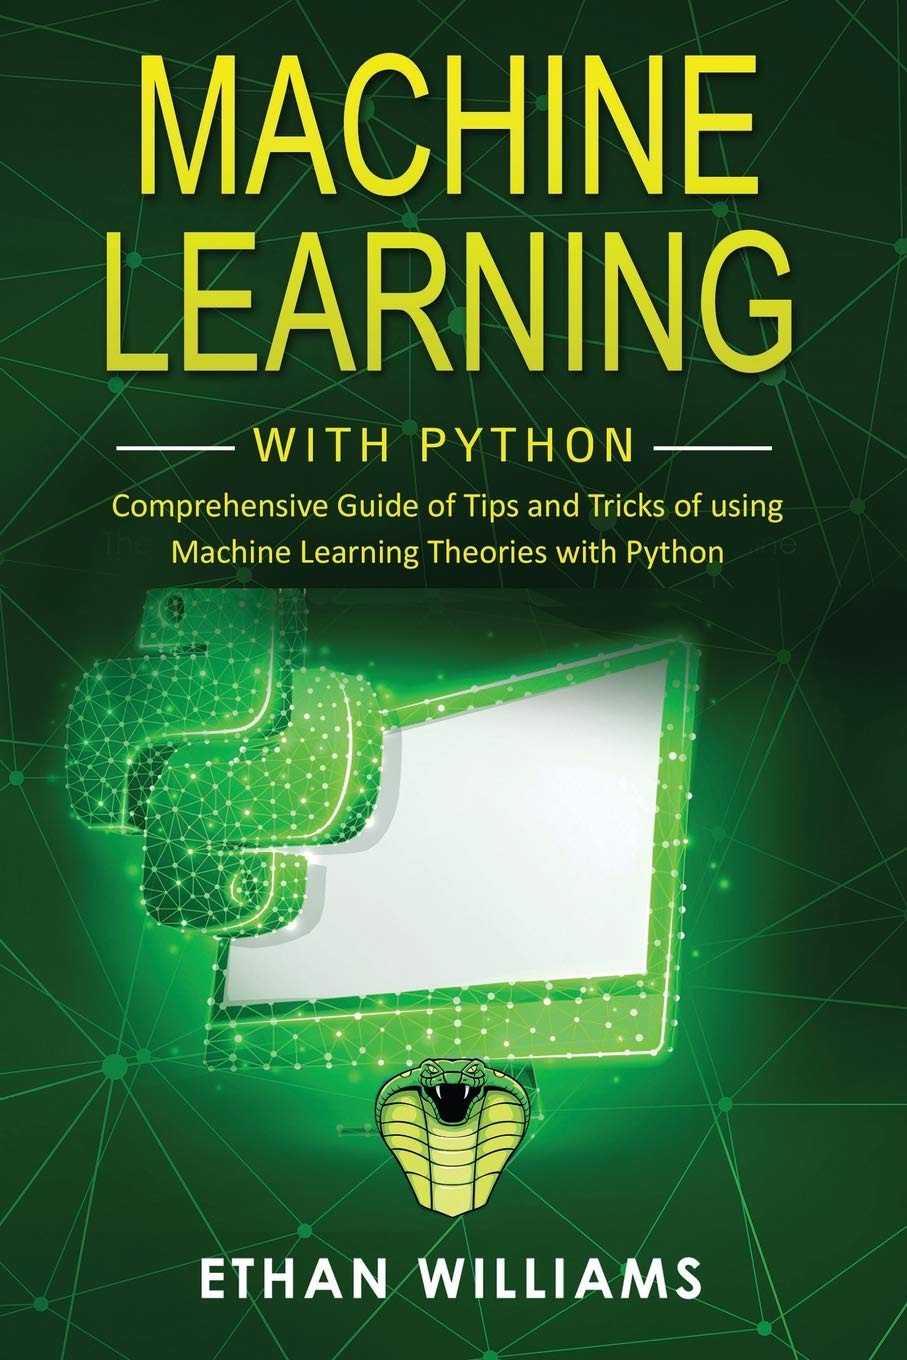 Machine Learning with Python: Comprehensive Guide of Tips and Tricks of using Machine Learning Theories with Python: 2